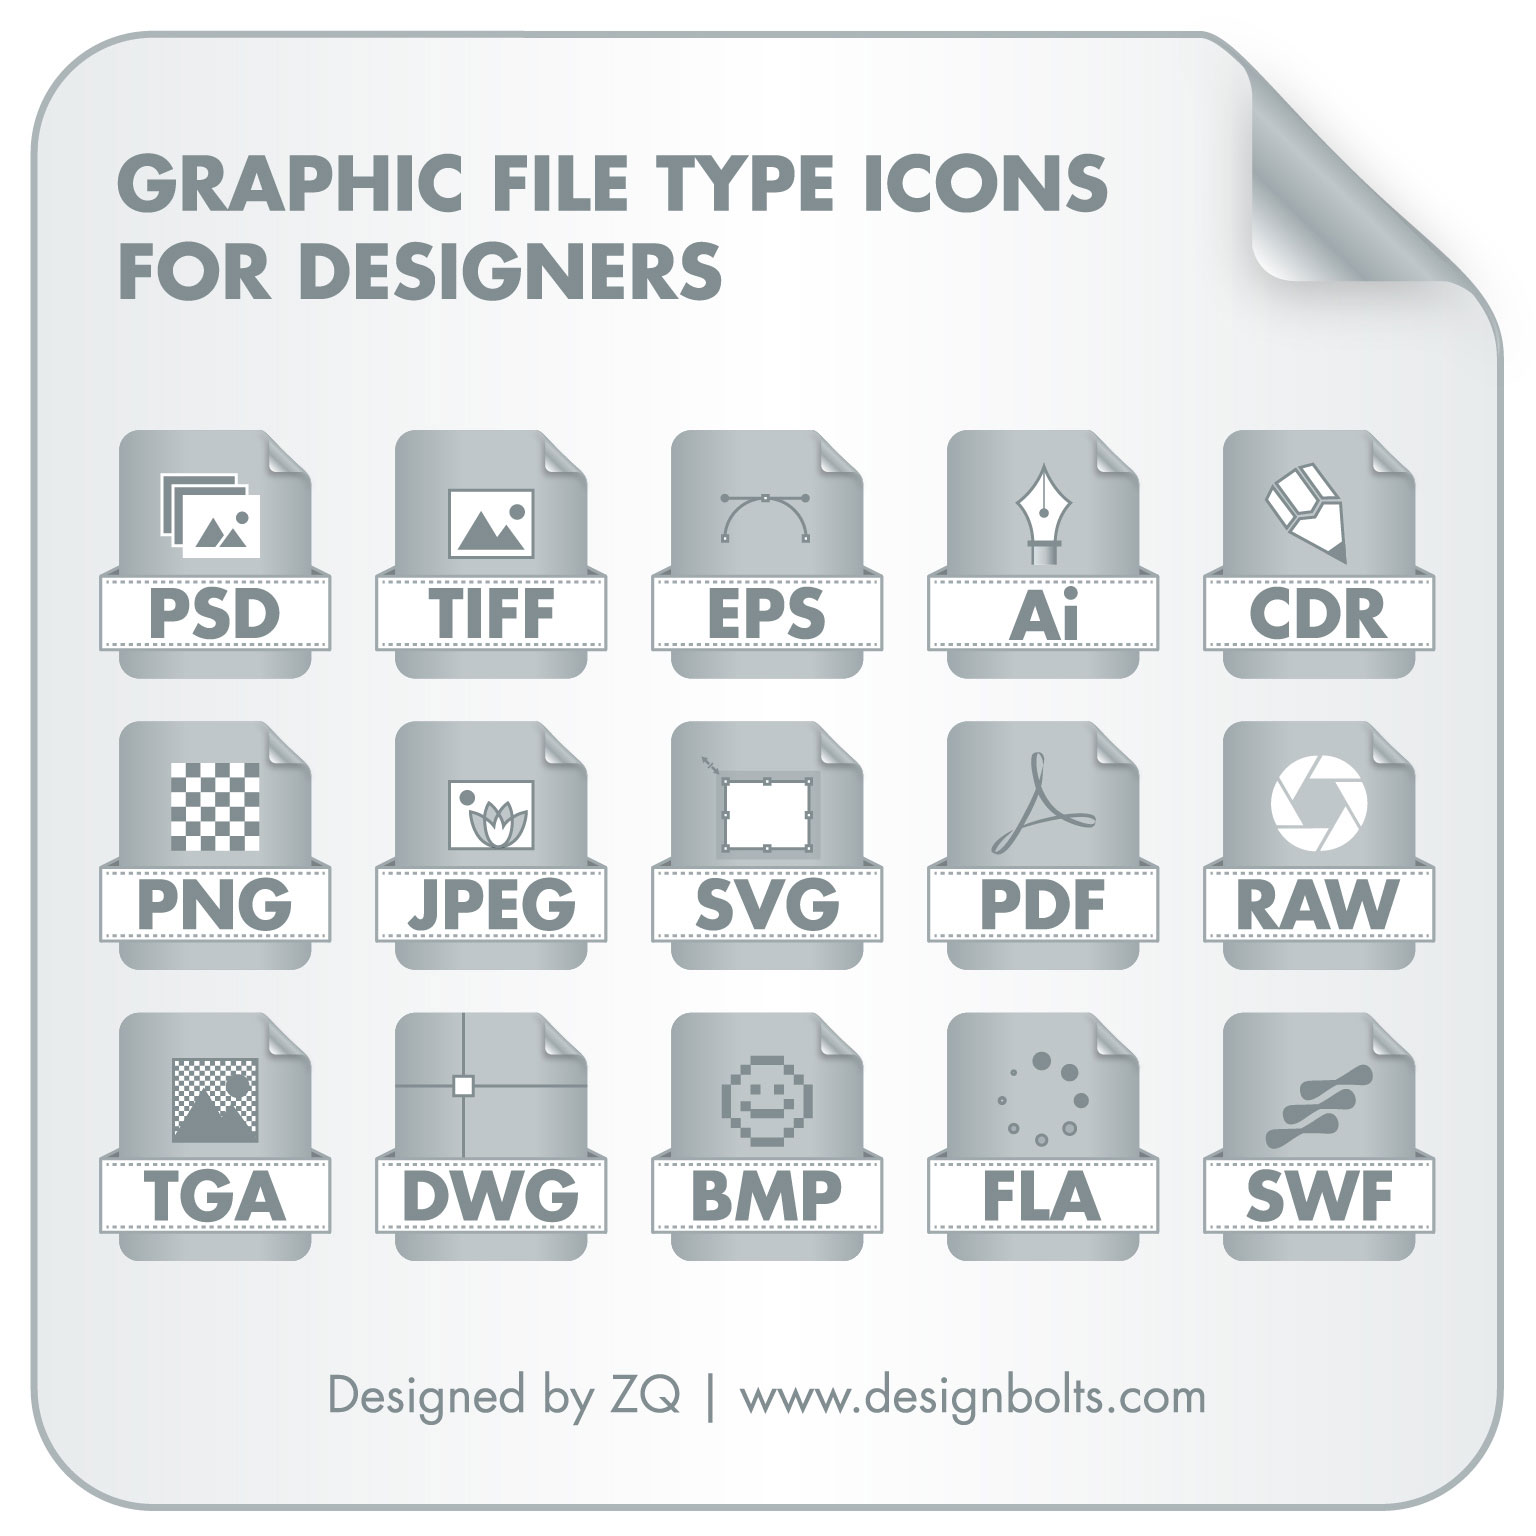 19 Types Of Vector Graphics Images